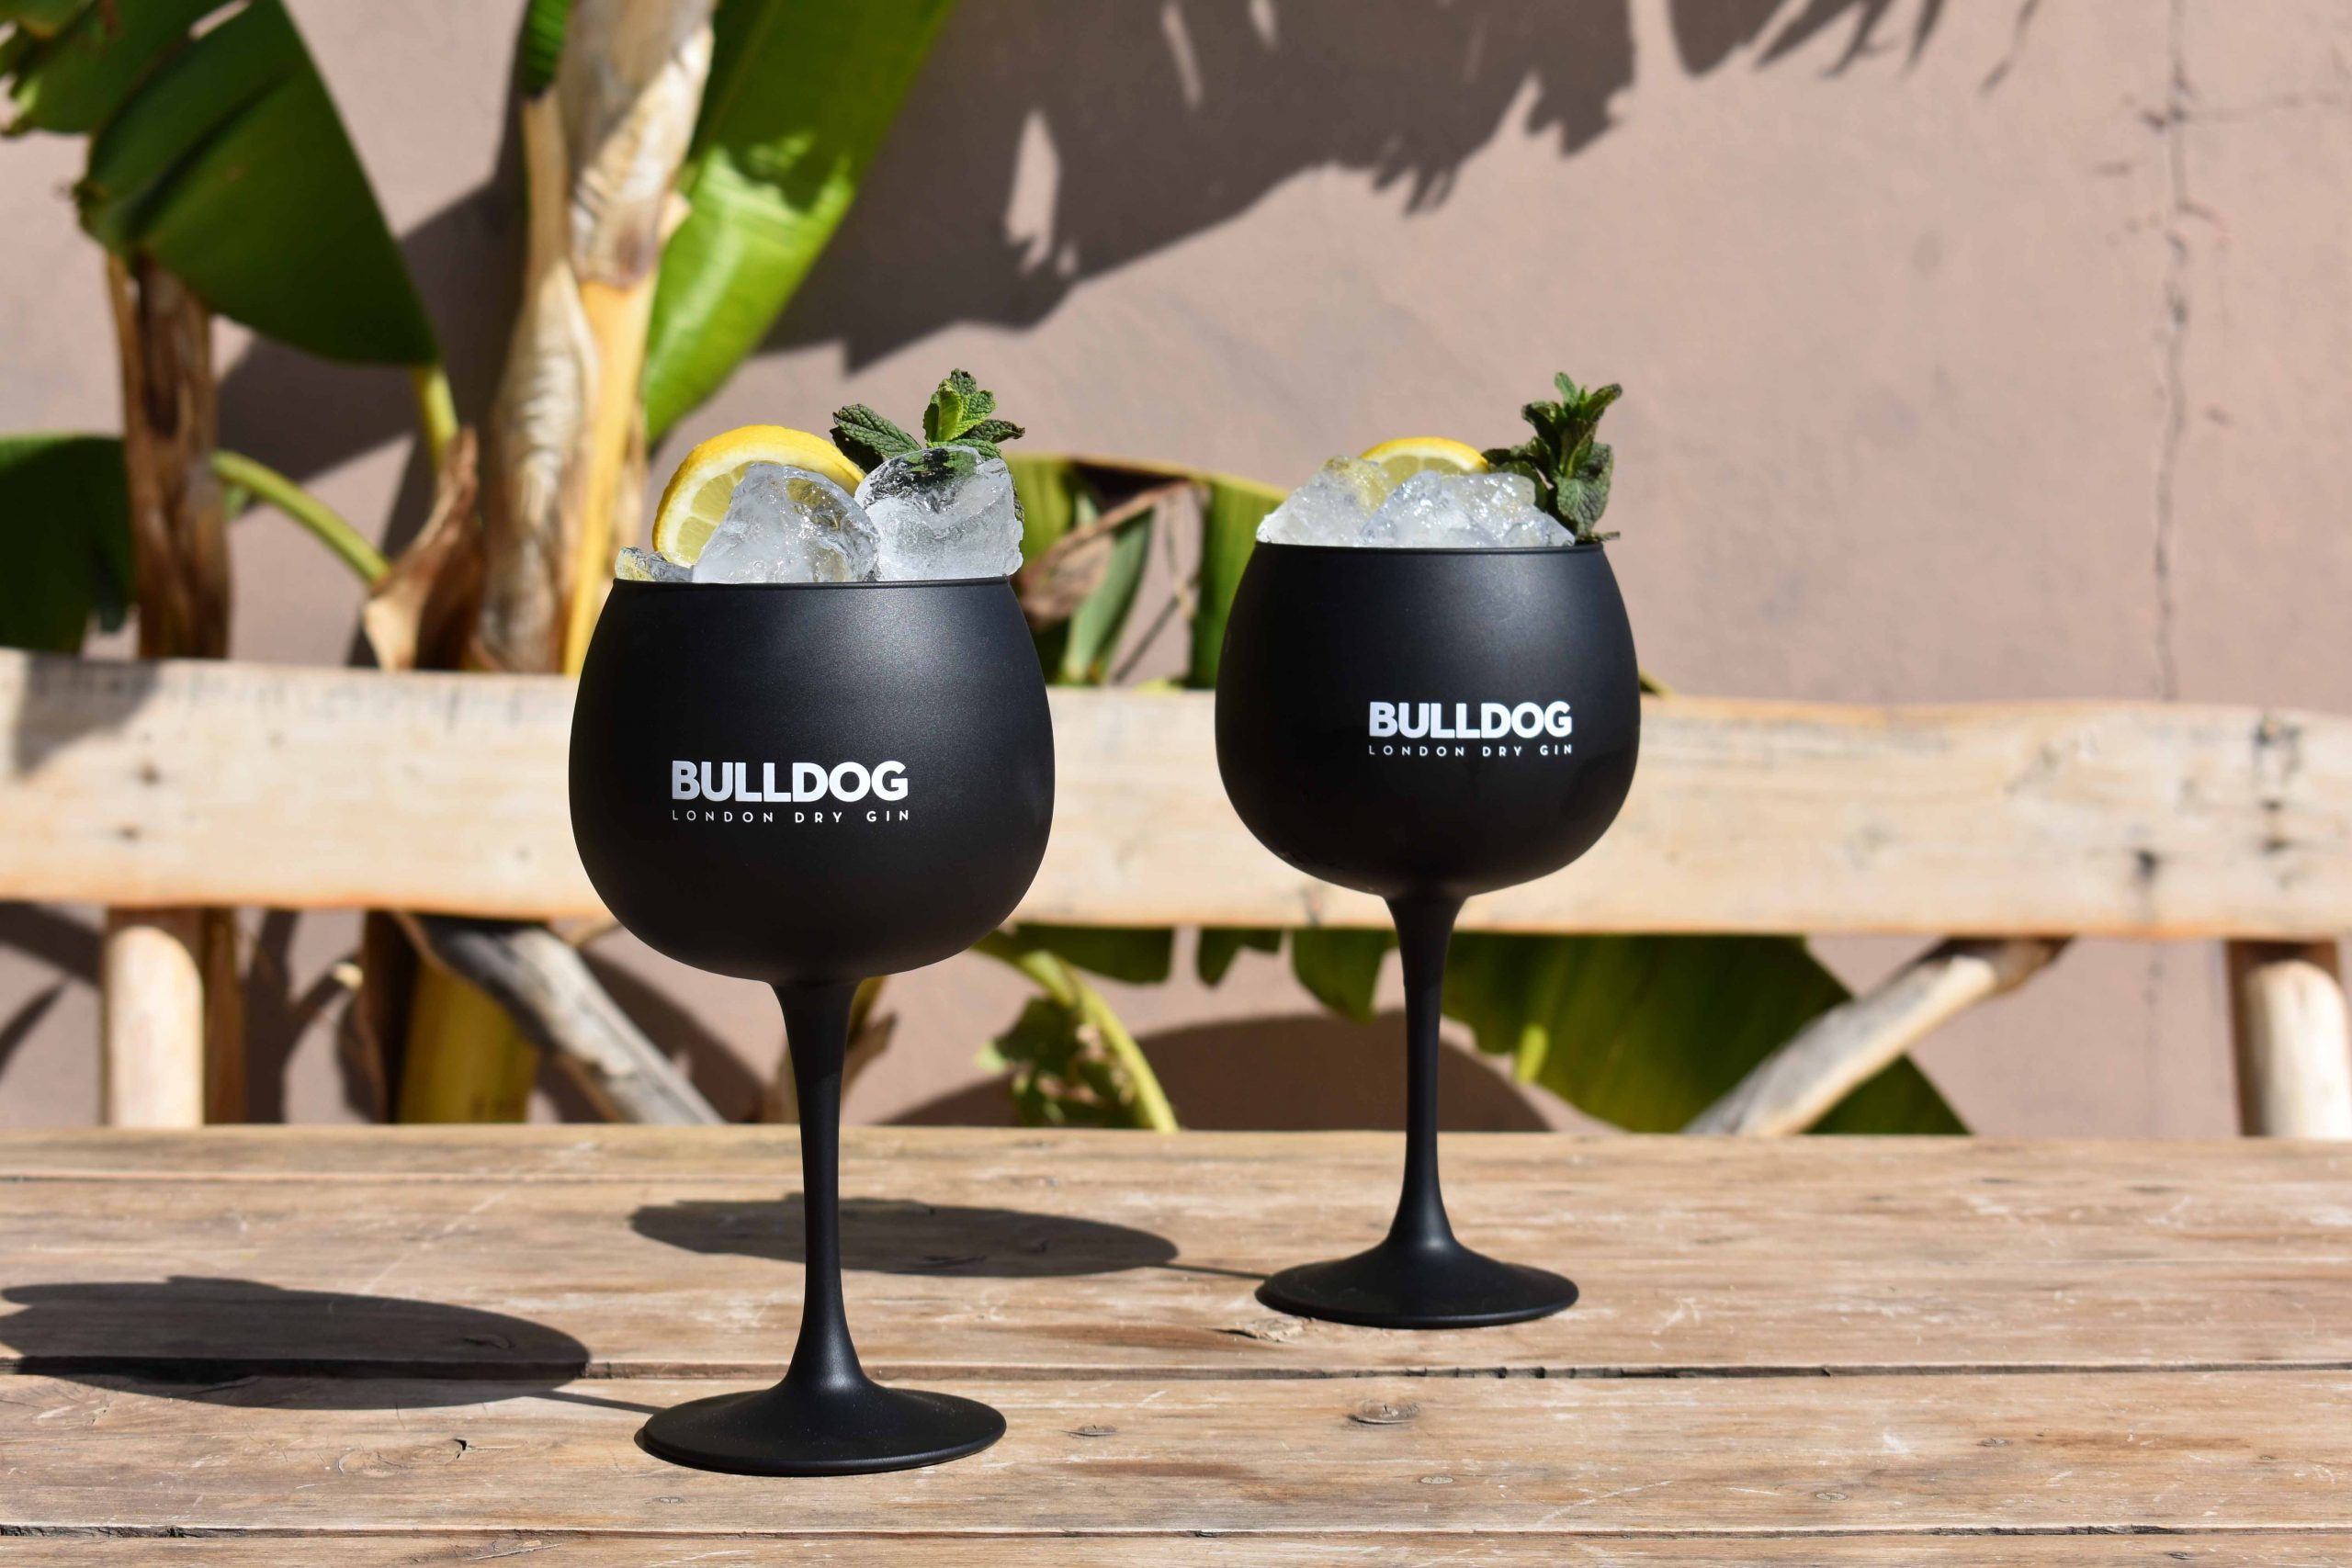 Bulldog Gin Joins Legendary Beat Hotel For A Revellers' Adventure In Marrakech photo